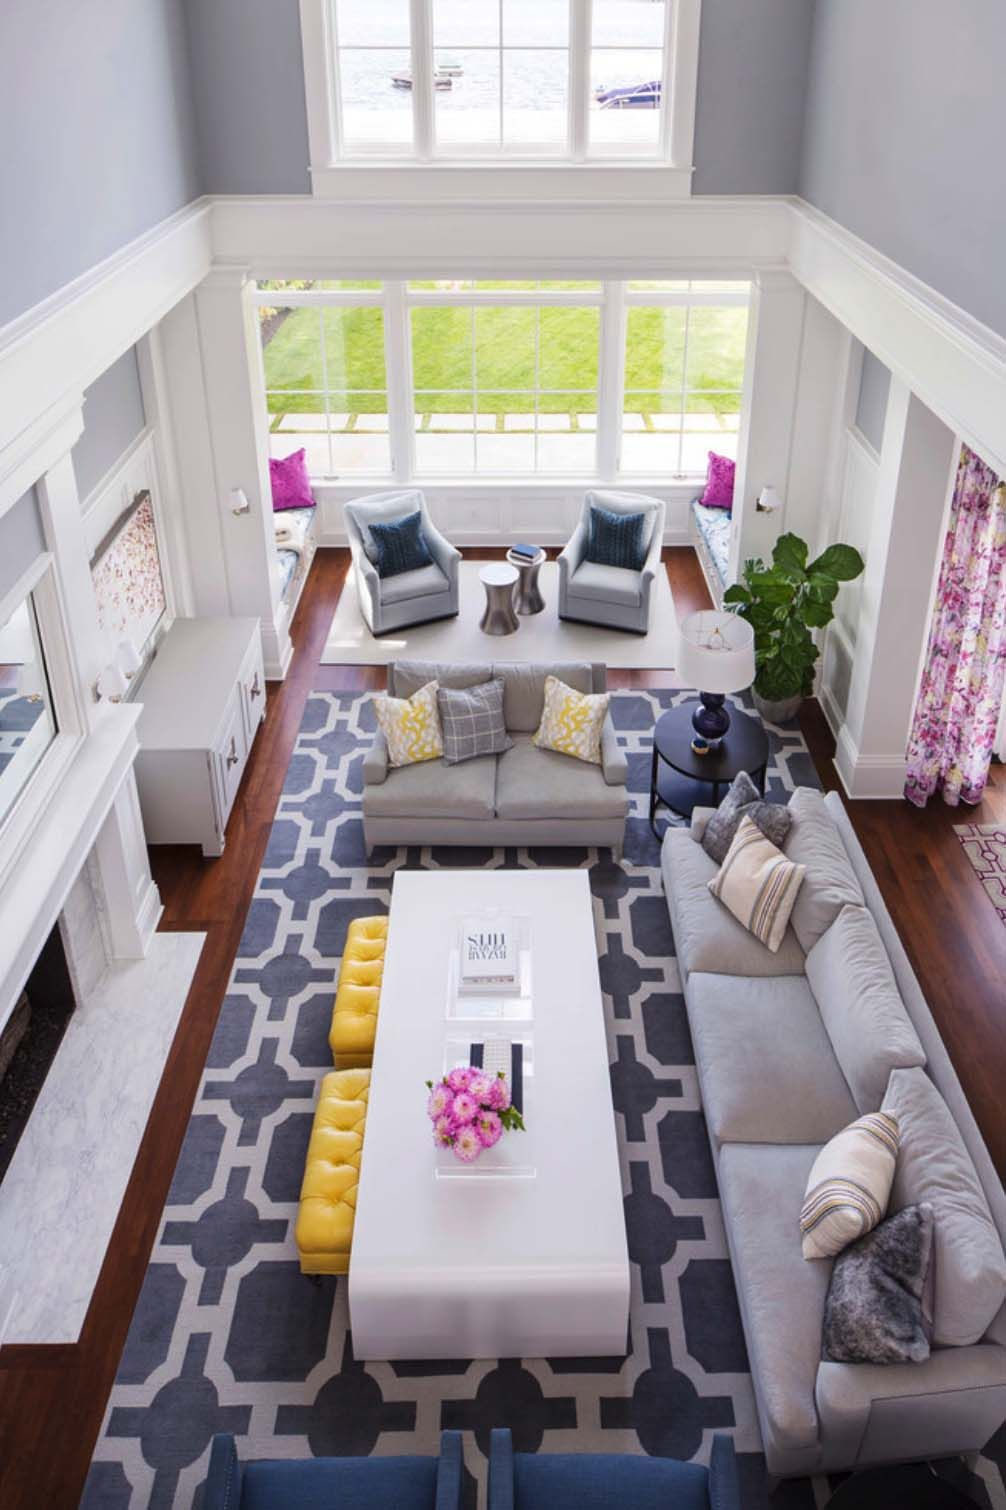 rectangular living room ideas on dreamy coastal inspired waterfront home in washington state rectangular living rooms narrow living room livingroom layout narrow living room